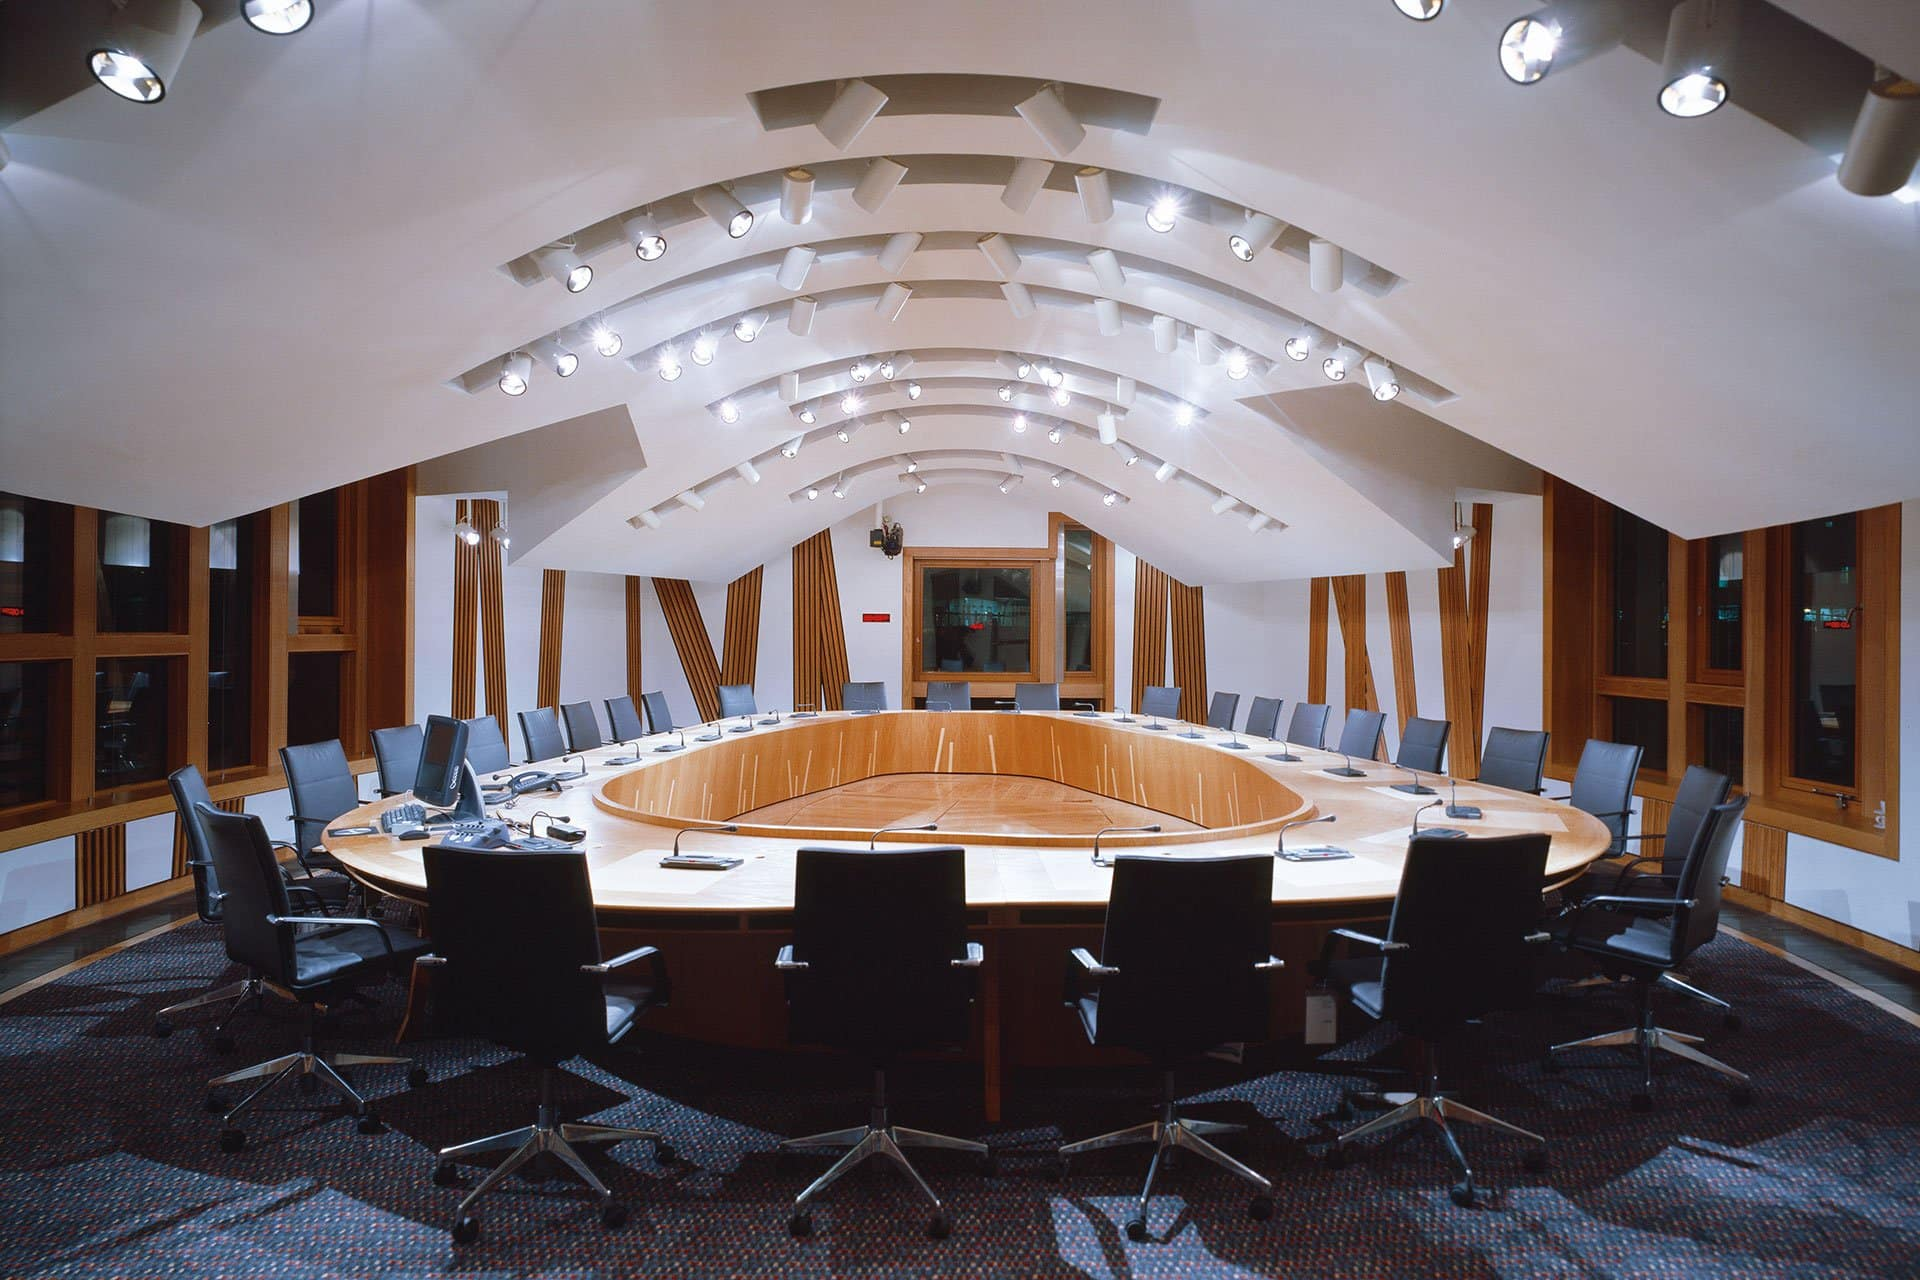 Scottish Parliament conference room architectural design lighting Office For Visual Interaction